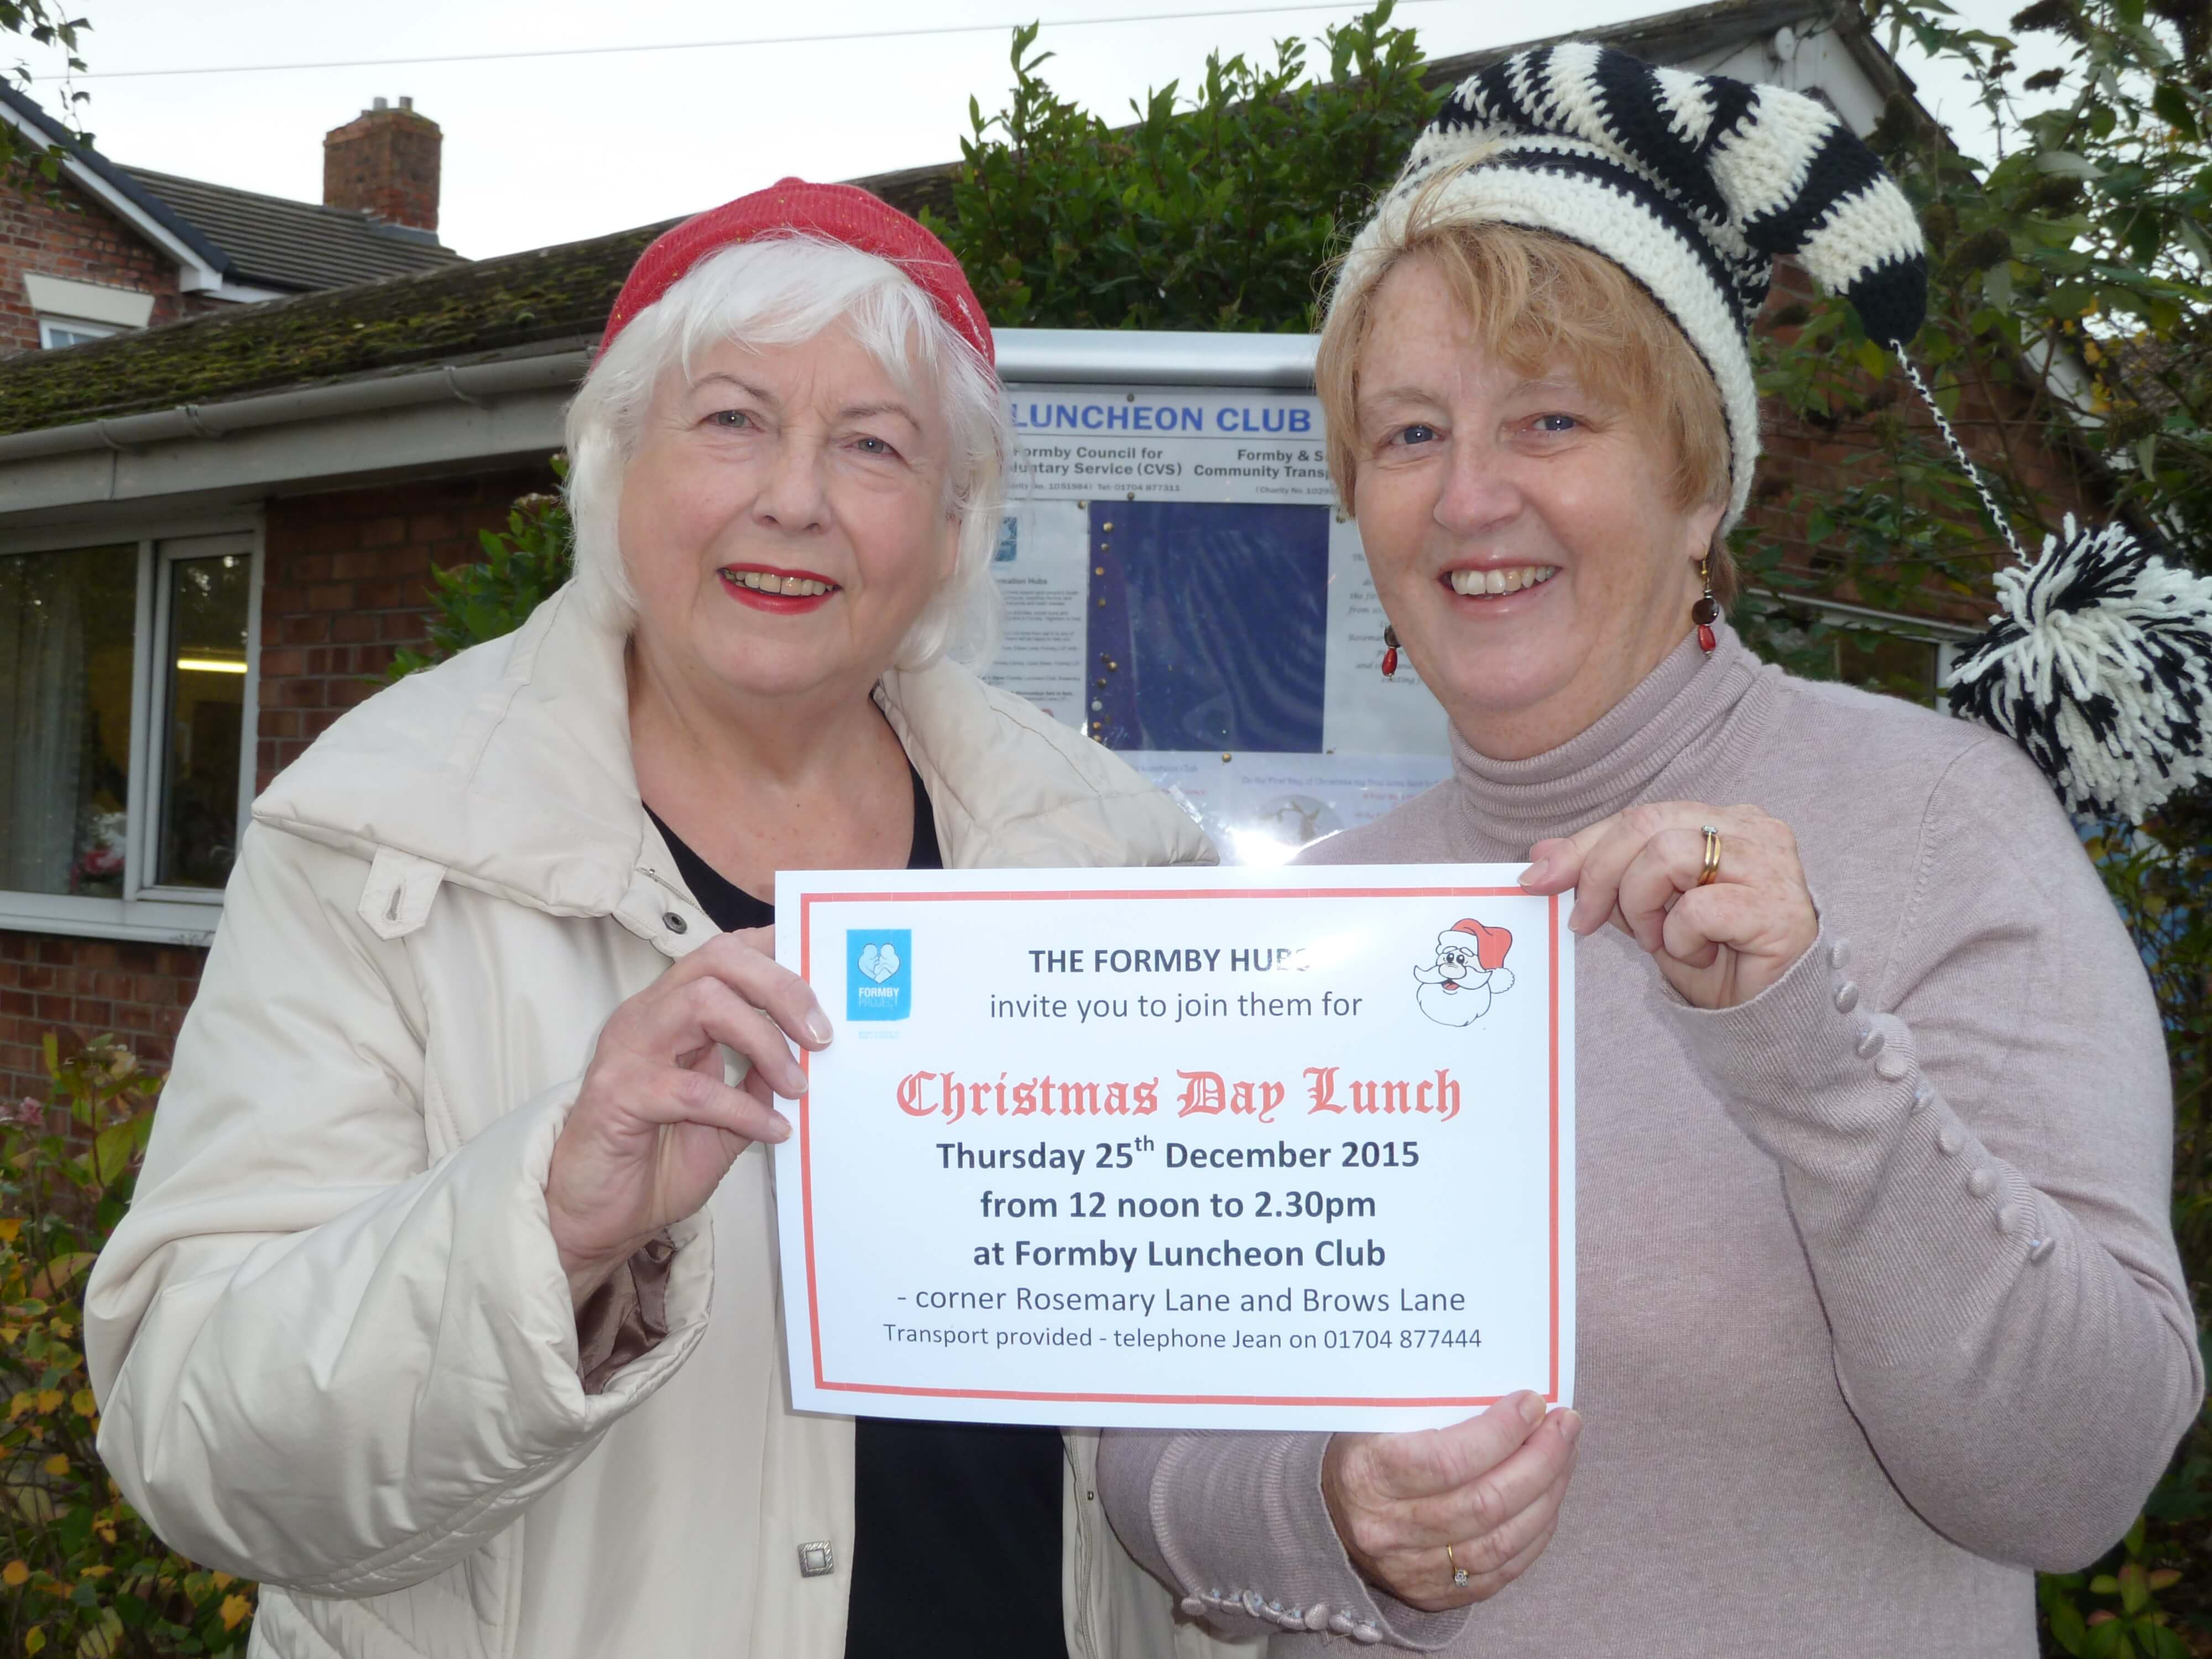 Formby Hub organisers Jean Jones and Cllr Catie Page are inviting people who want to attend the Christmas Day dinner to register.